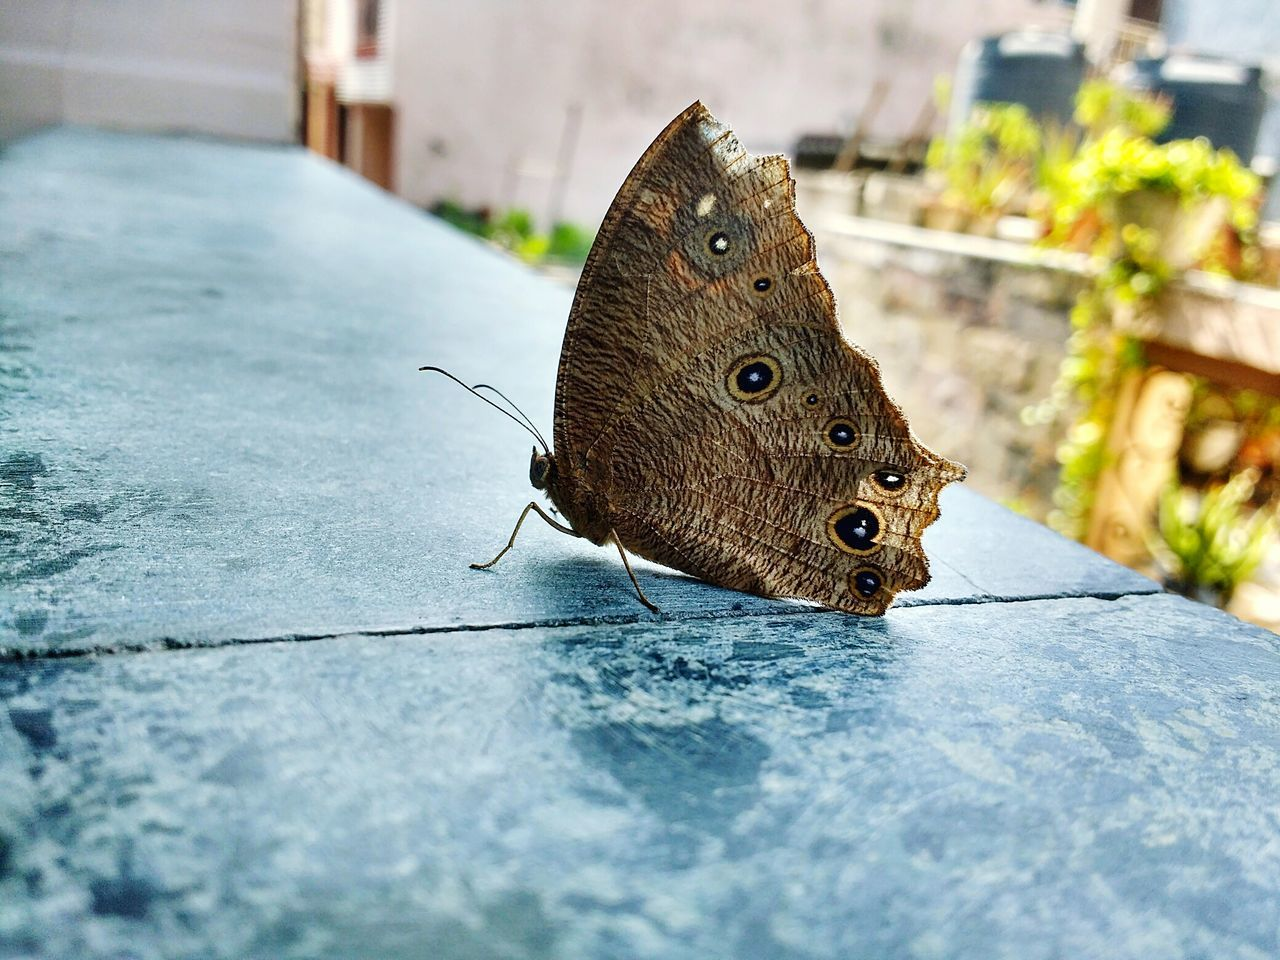 animals in the wild, insect, one animal, animal themes, butterfly - insect, close-up, day, no people, animal wildlife, butterfly, outdoors, nature